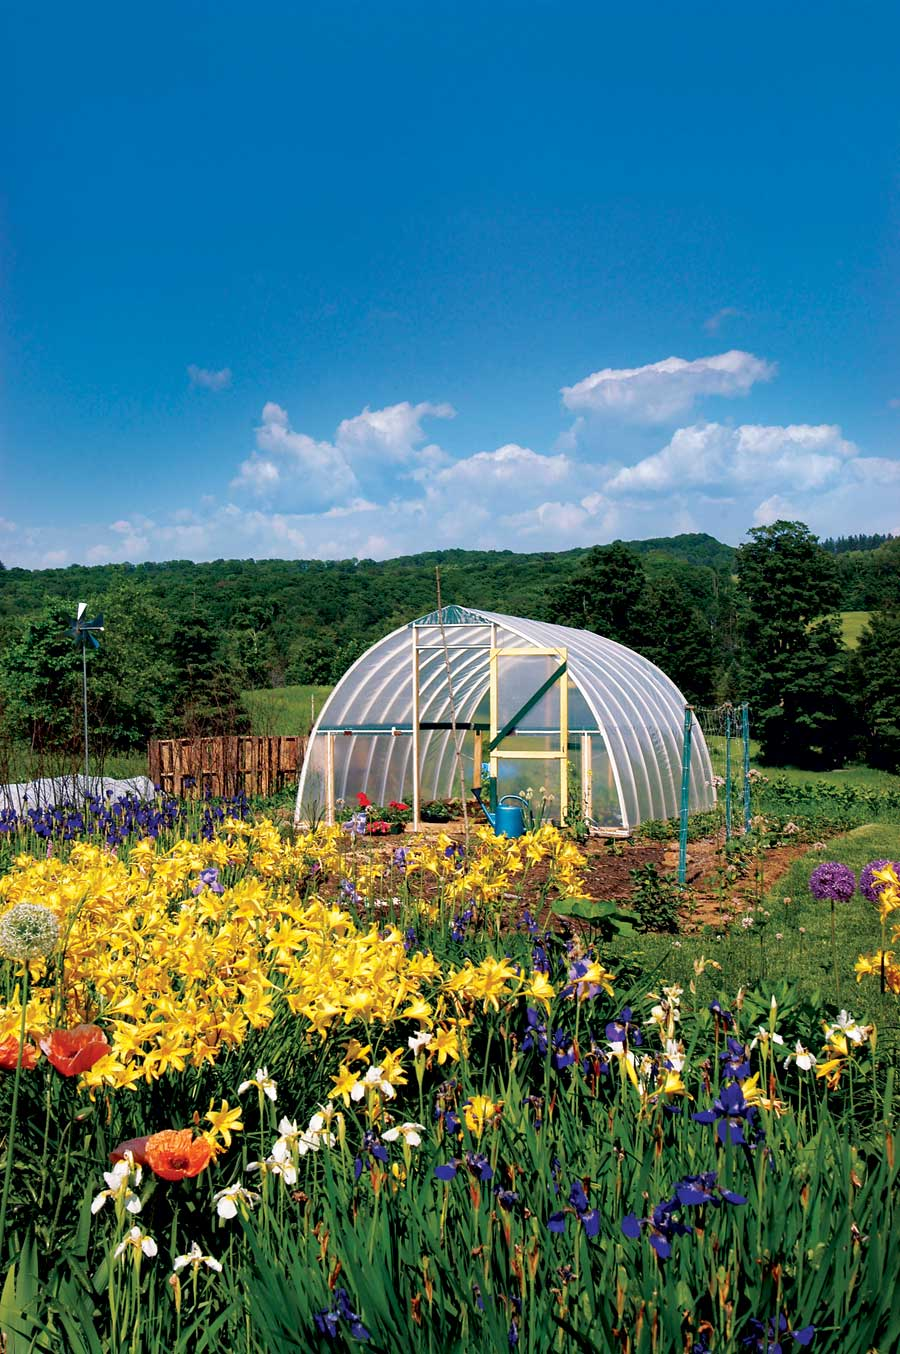 12 Hoop House Plans To Enjoy Gardening Throughout Winter